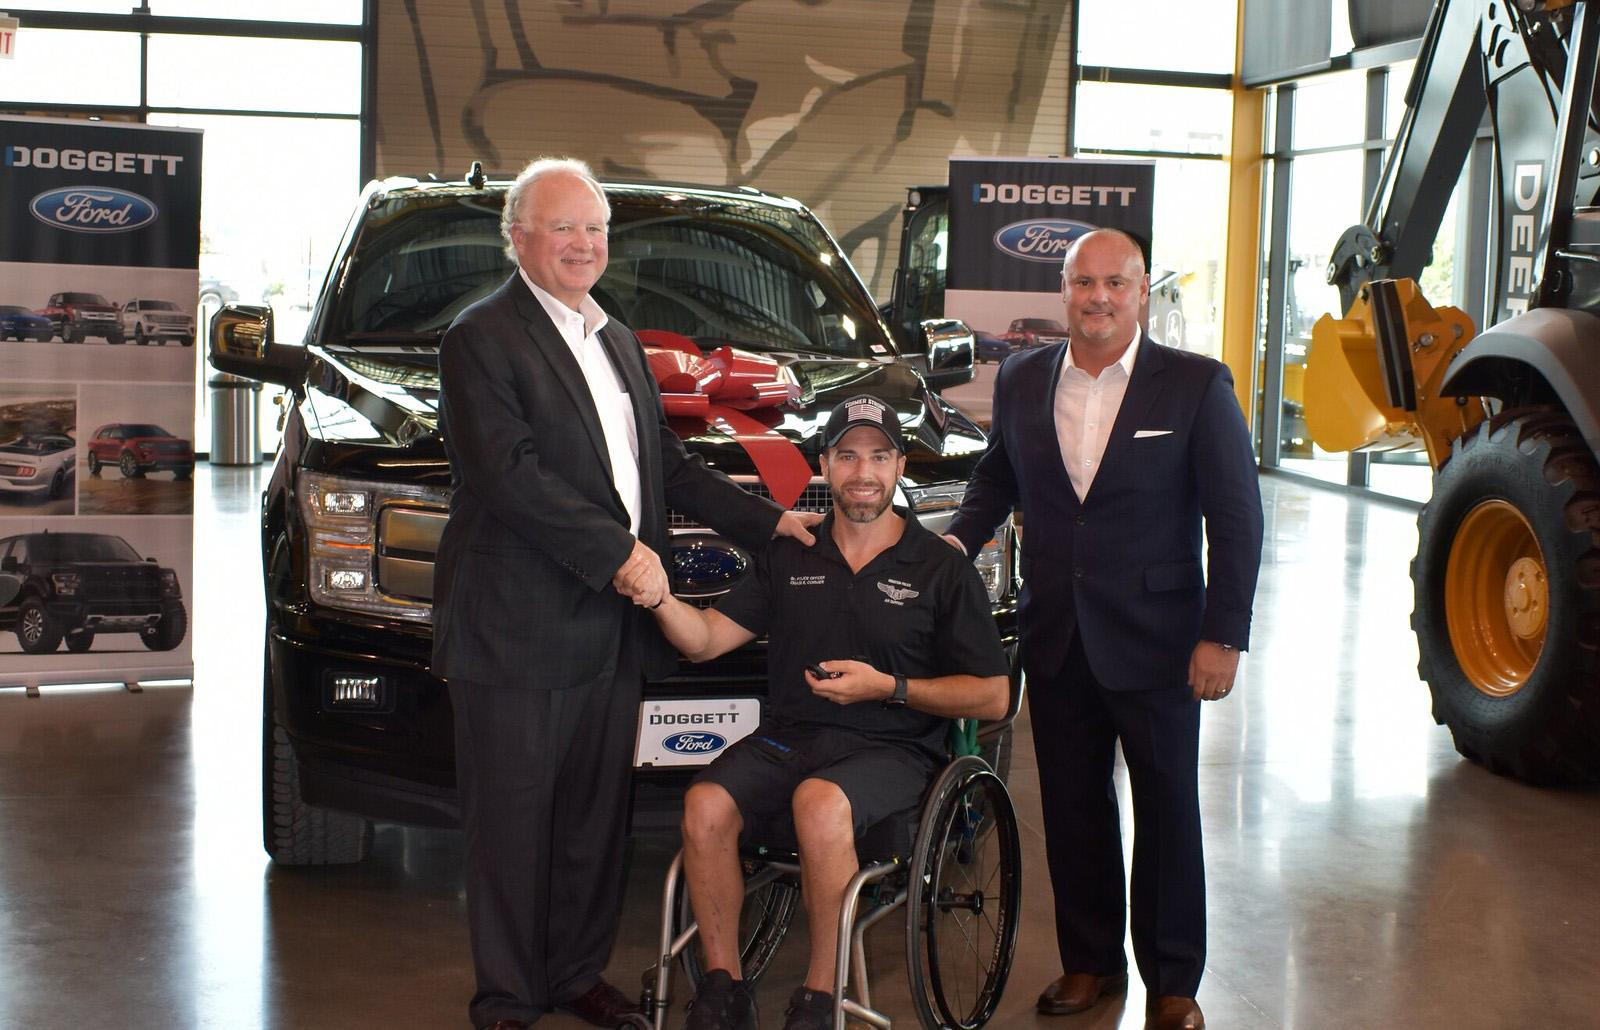 100 Club, Doggett Ford donate new F-150 to recovering HPD pilot